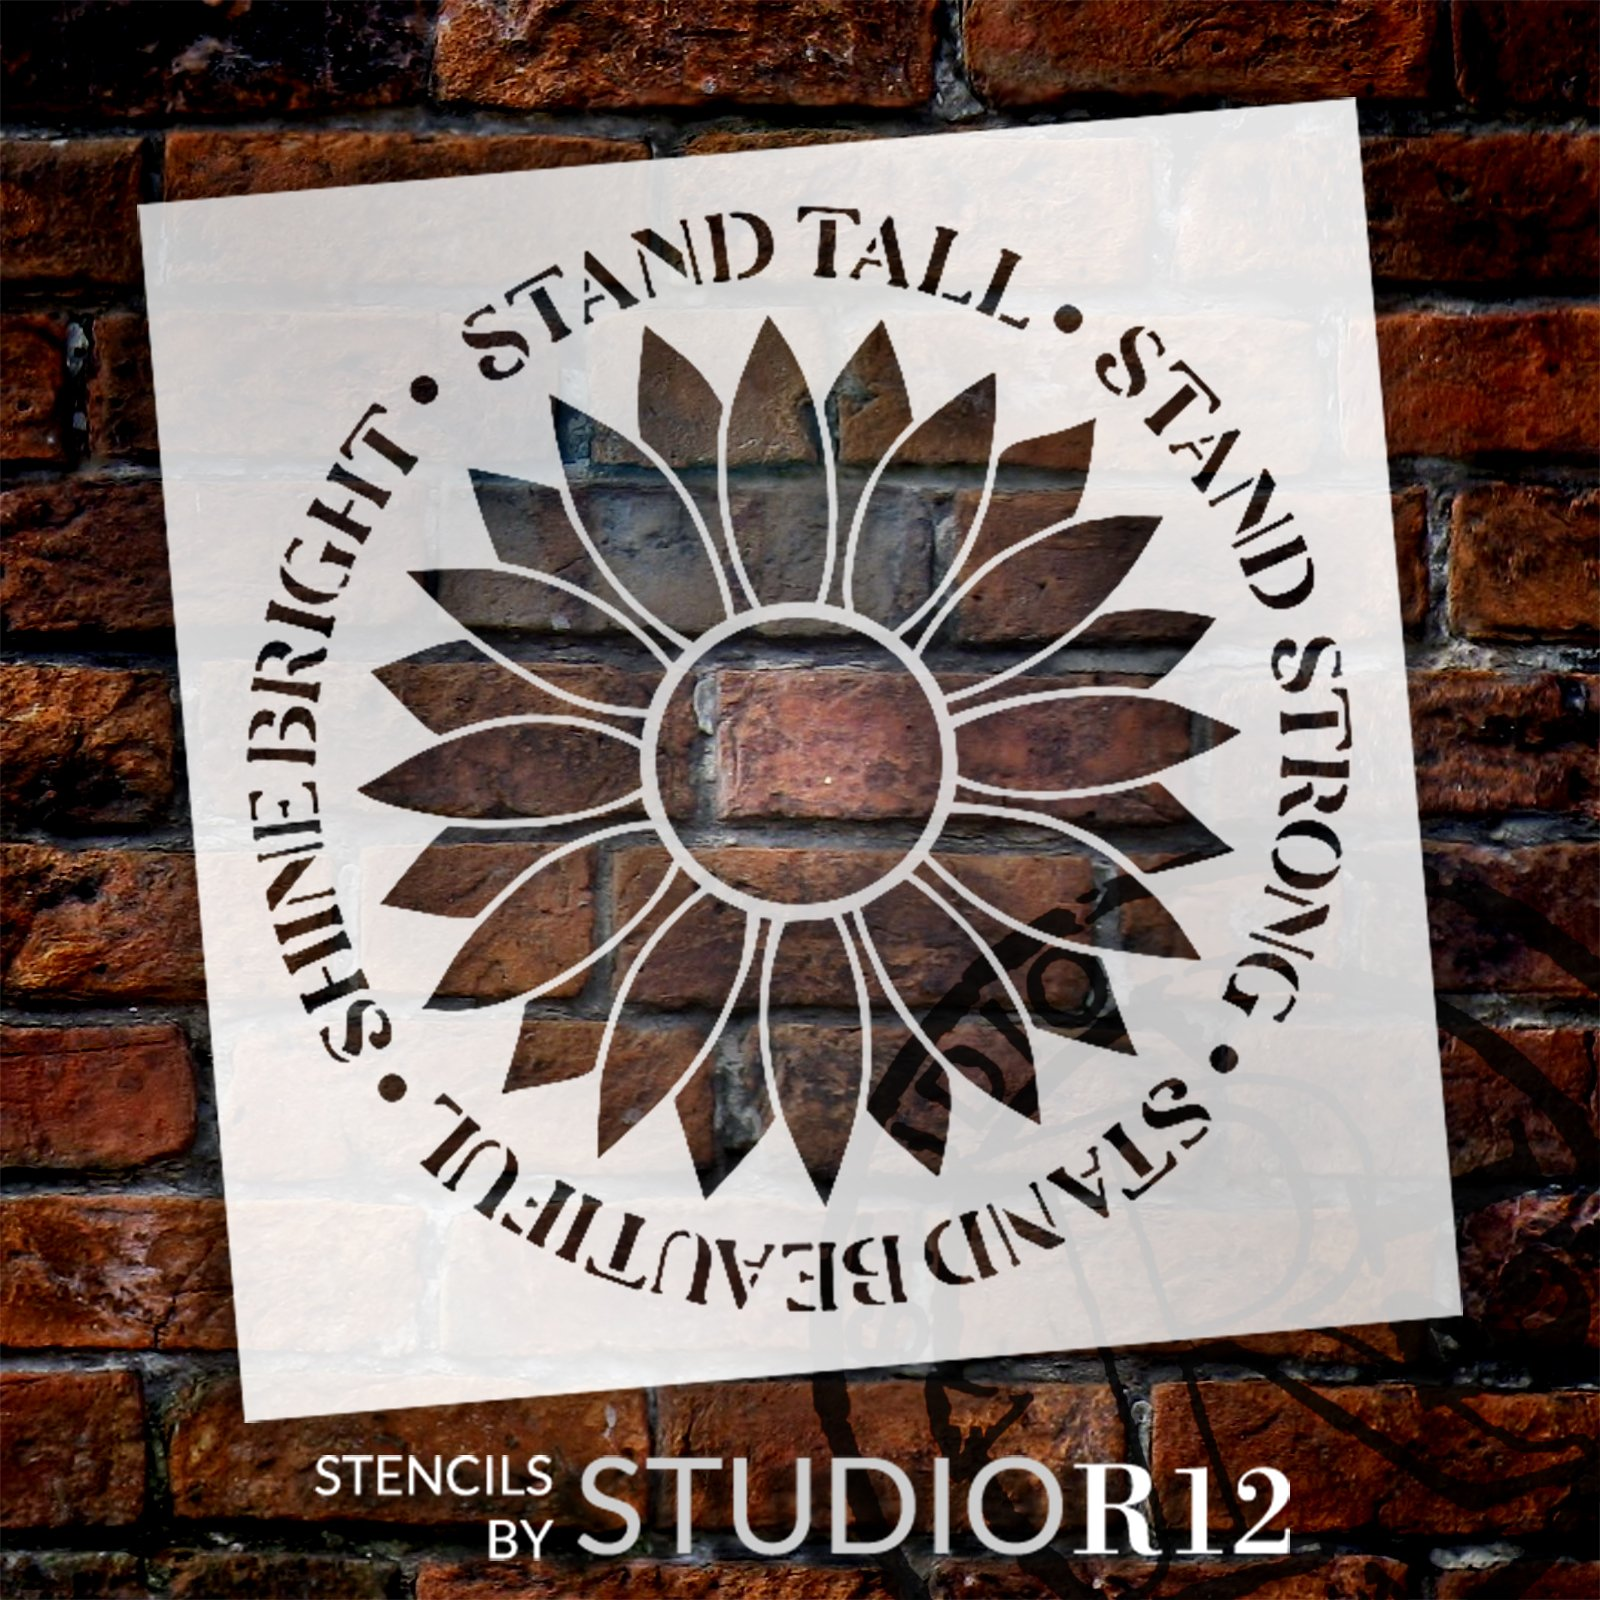 Stand Tall Strong Beautiful Shine Bright Stencil by StudioR12 | Craft DIY Sunflower Home Decor | Paint Wood Sign Reusable Mylar Template | Select Size